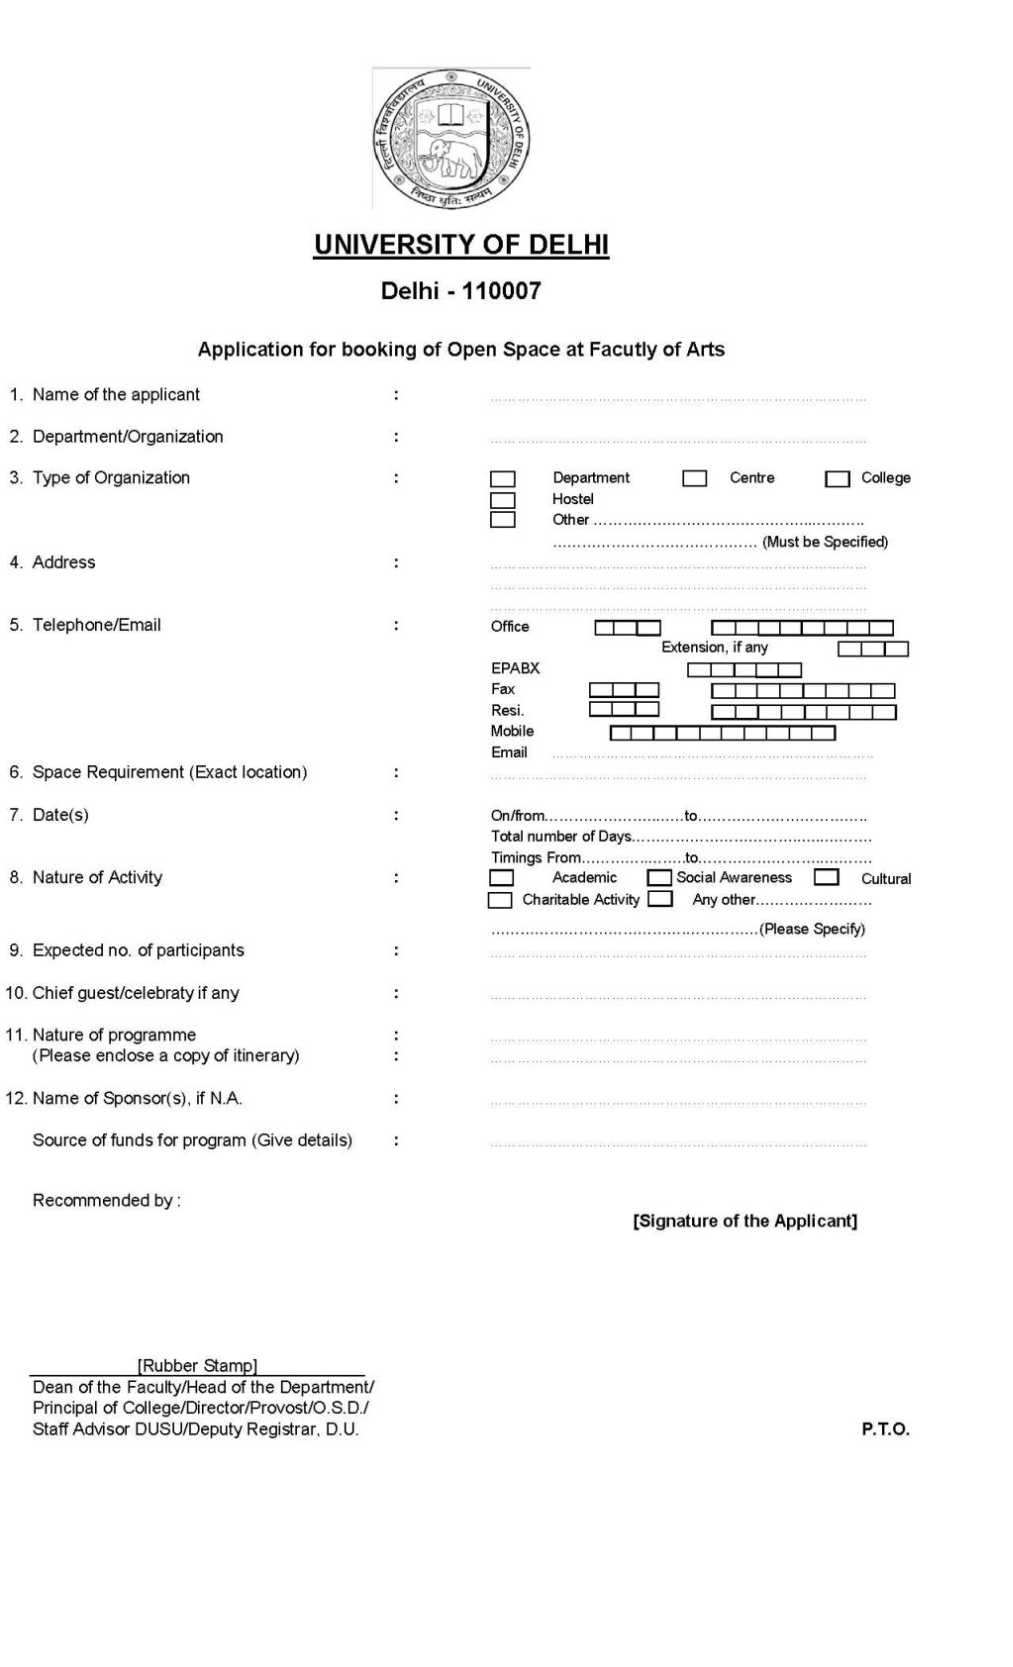 DU-Admission-Application-Form M Com Application Form Du on application meaning in science, application cartoon, application for rental, application for employment, application to join a club, application in spanish, application service provider, application for scholarship sample, application to be my boyfriend, application to date my son, application trial, application to join motorcycle club, application database diagram, application approved, application clip art, application insights, application error, application template, application to rent california,